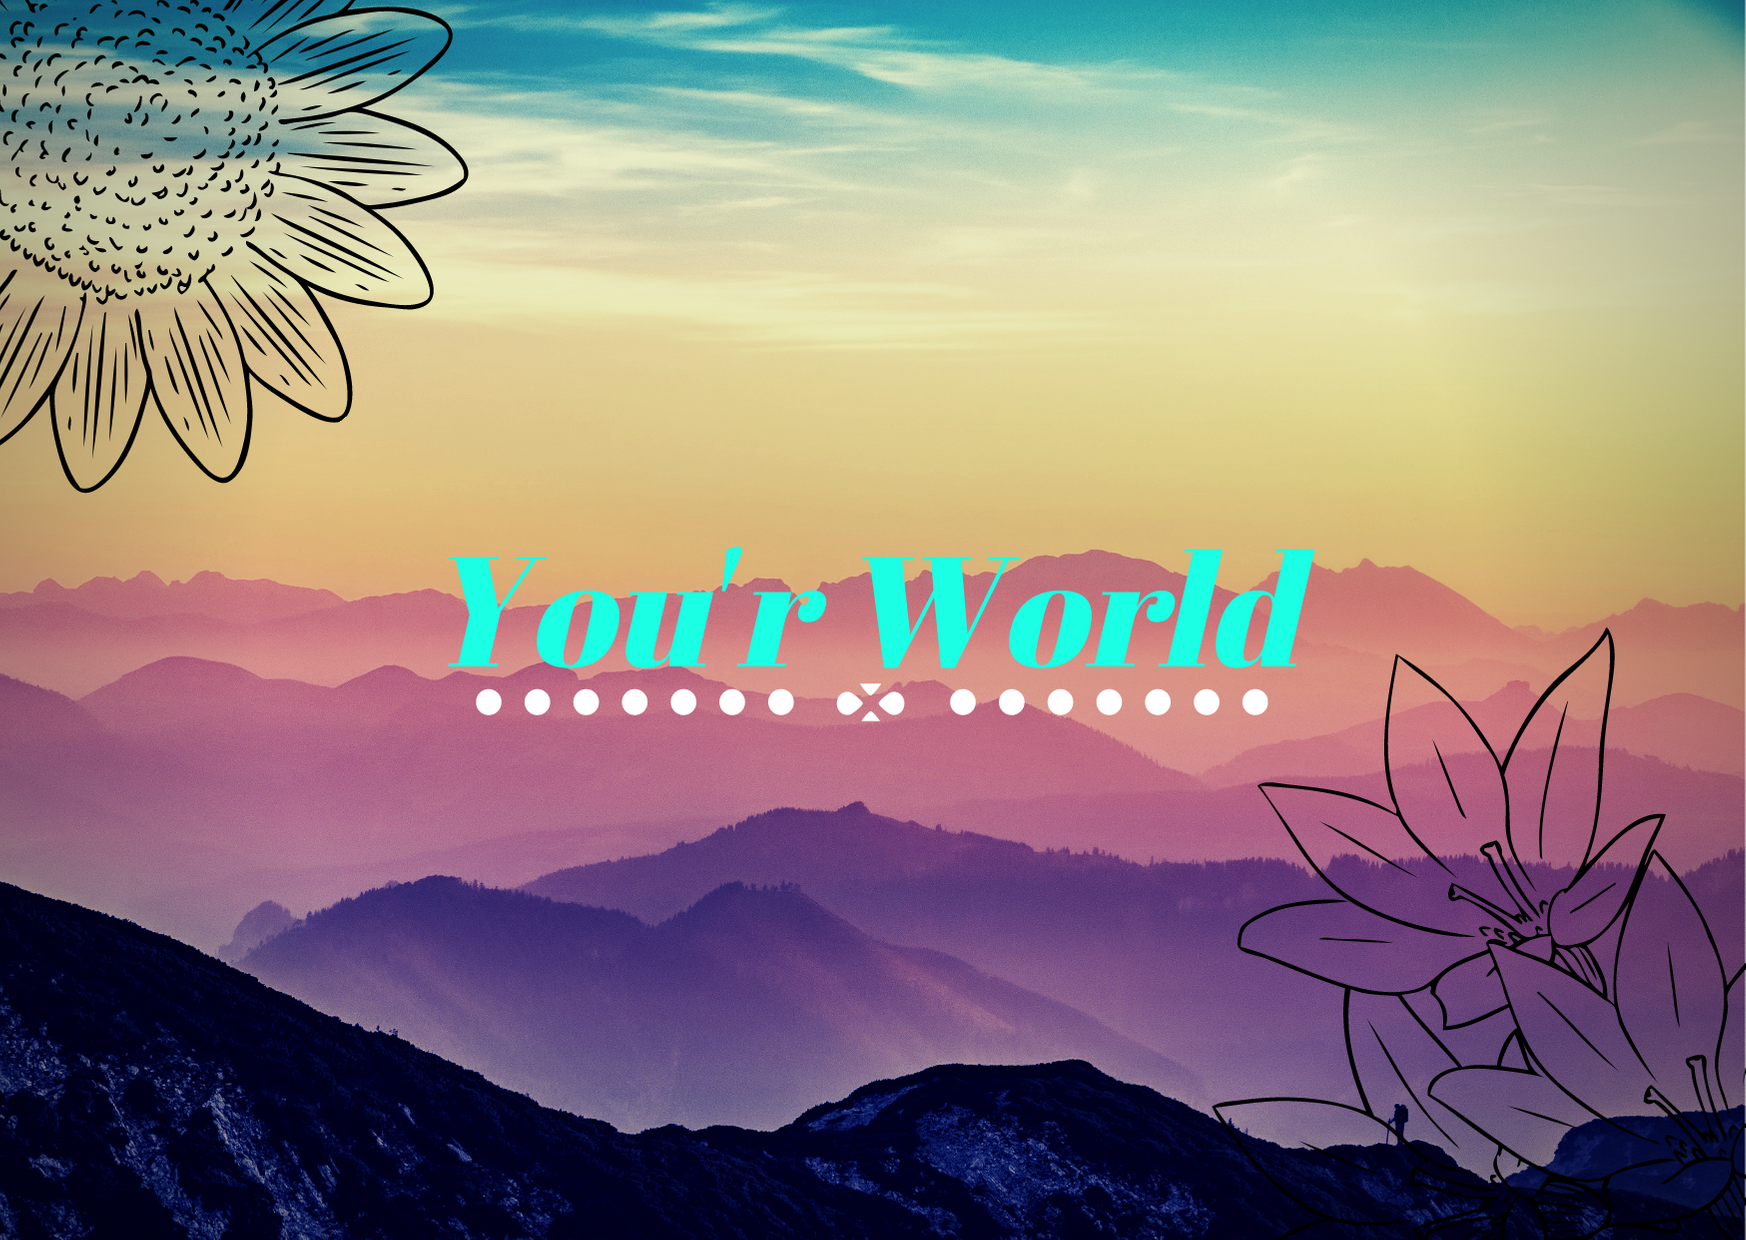 Wallpaper to your website or blog